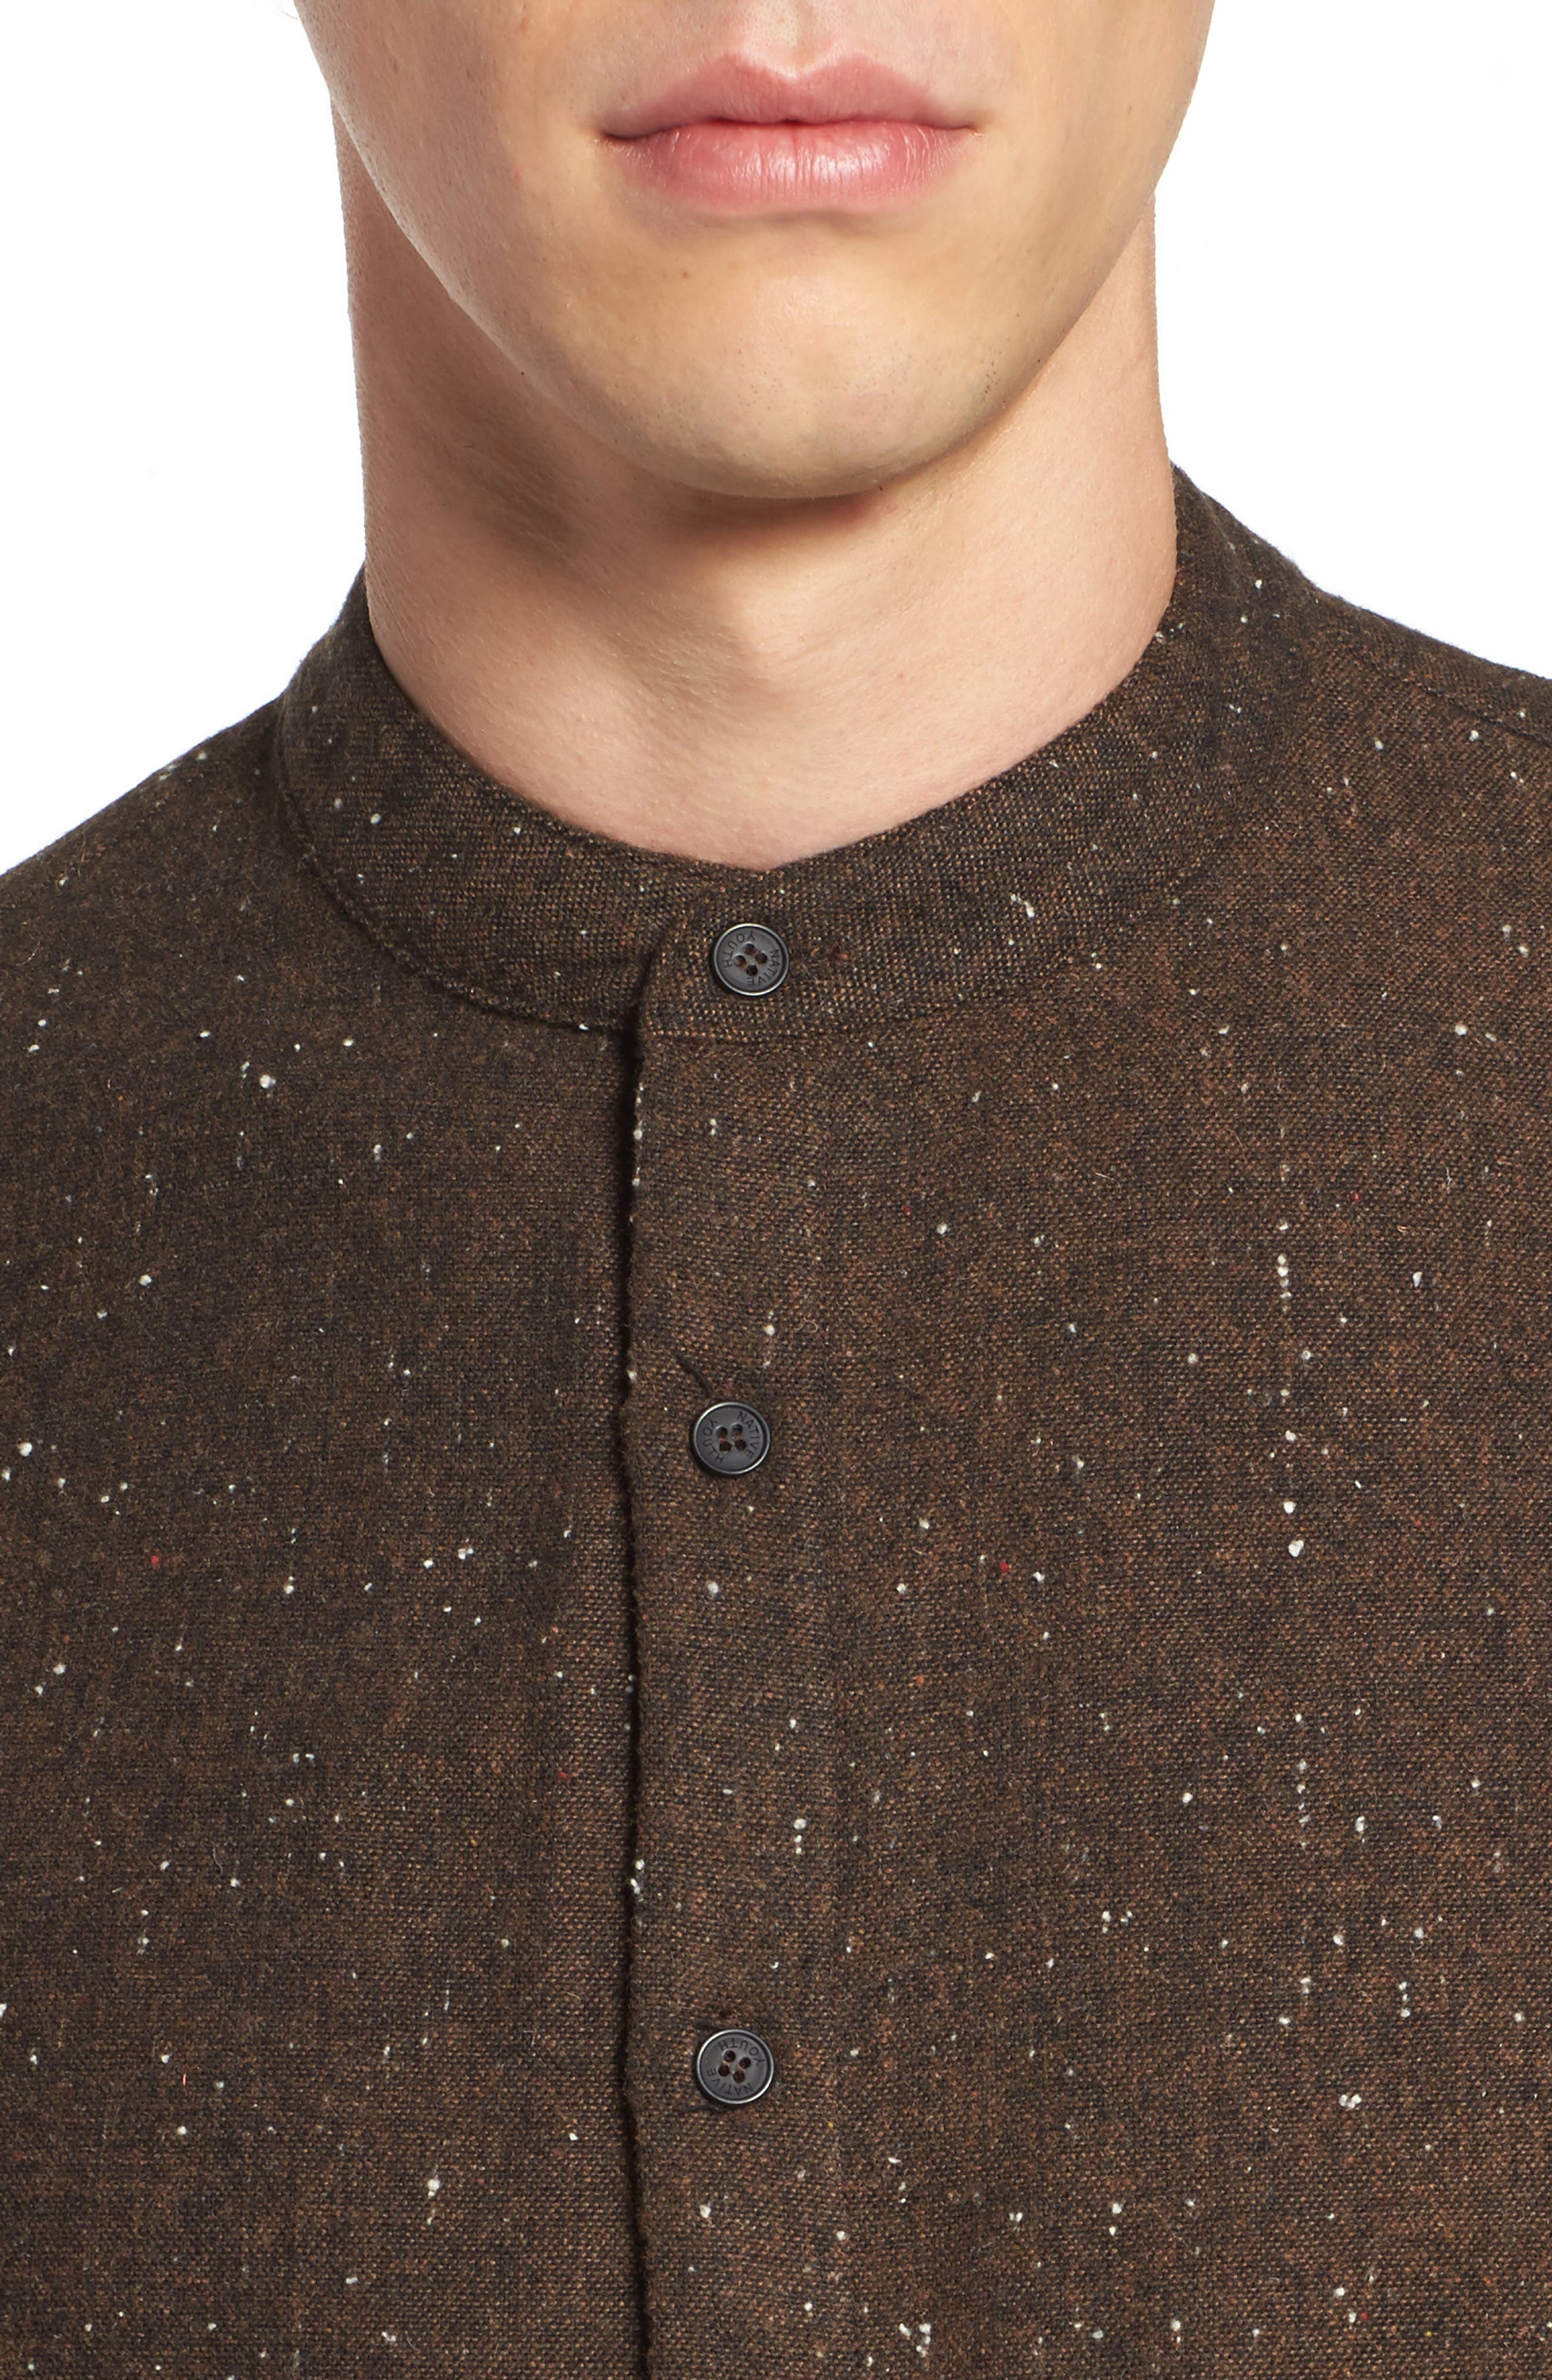 Alford Nep Shirt,                             Alternate thumbnail 4, color,                             Brown